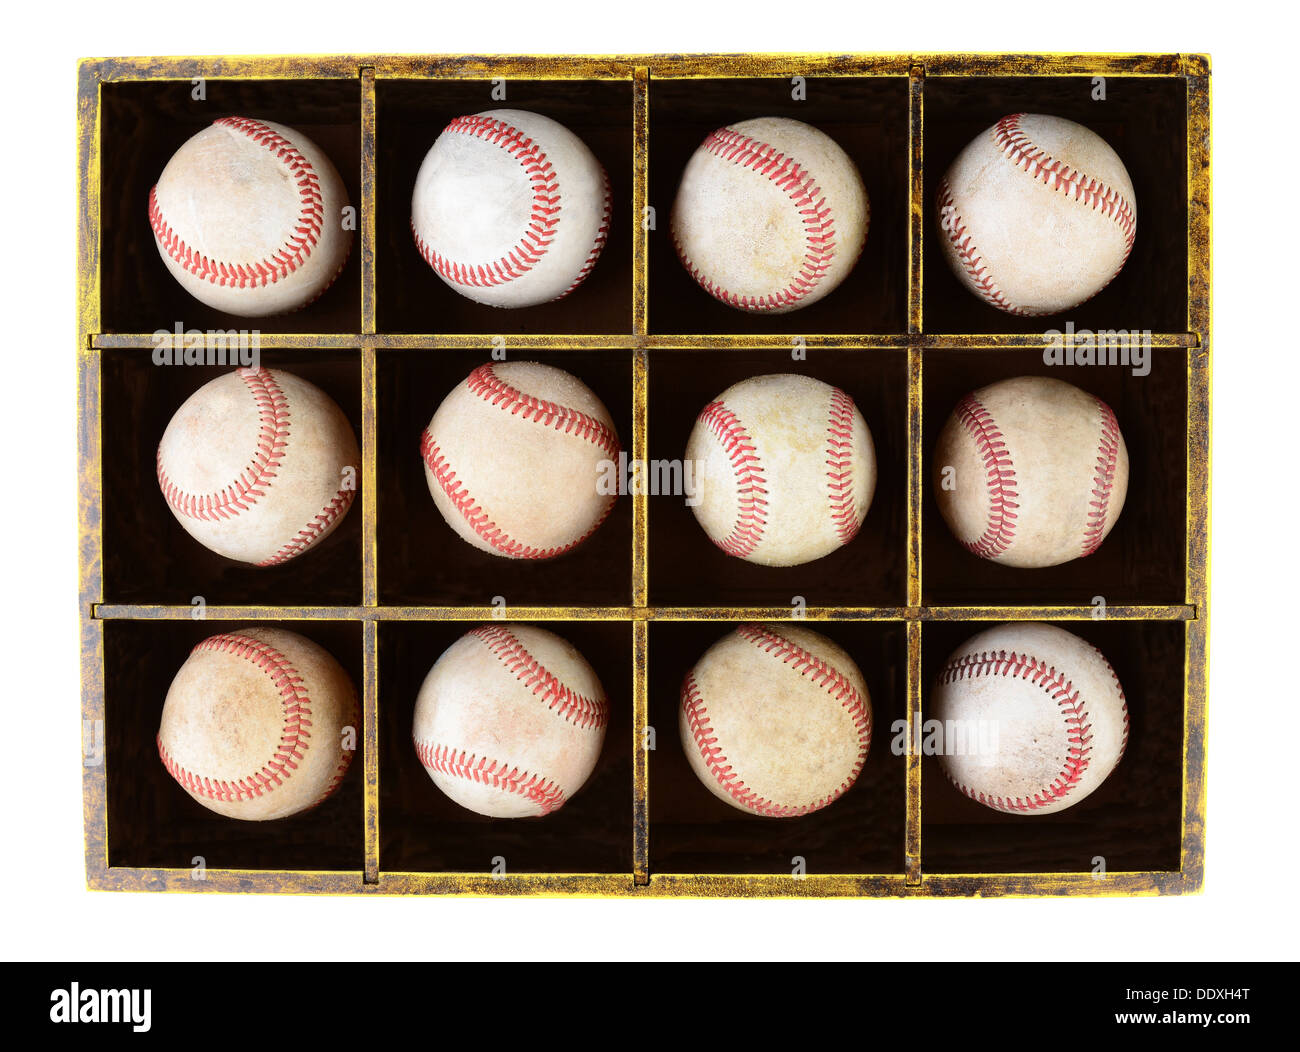 A dozen scuffed baseballs in a divided wooden box. Horizontal format over white. - Stock Image